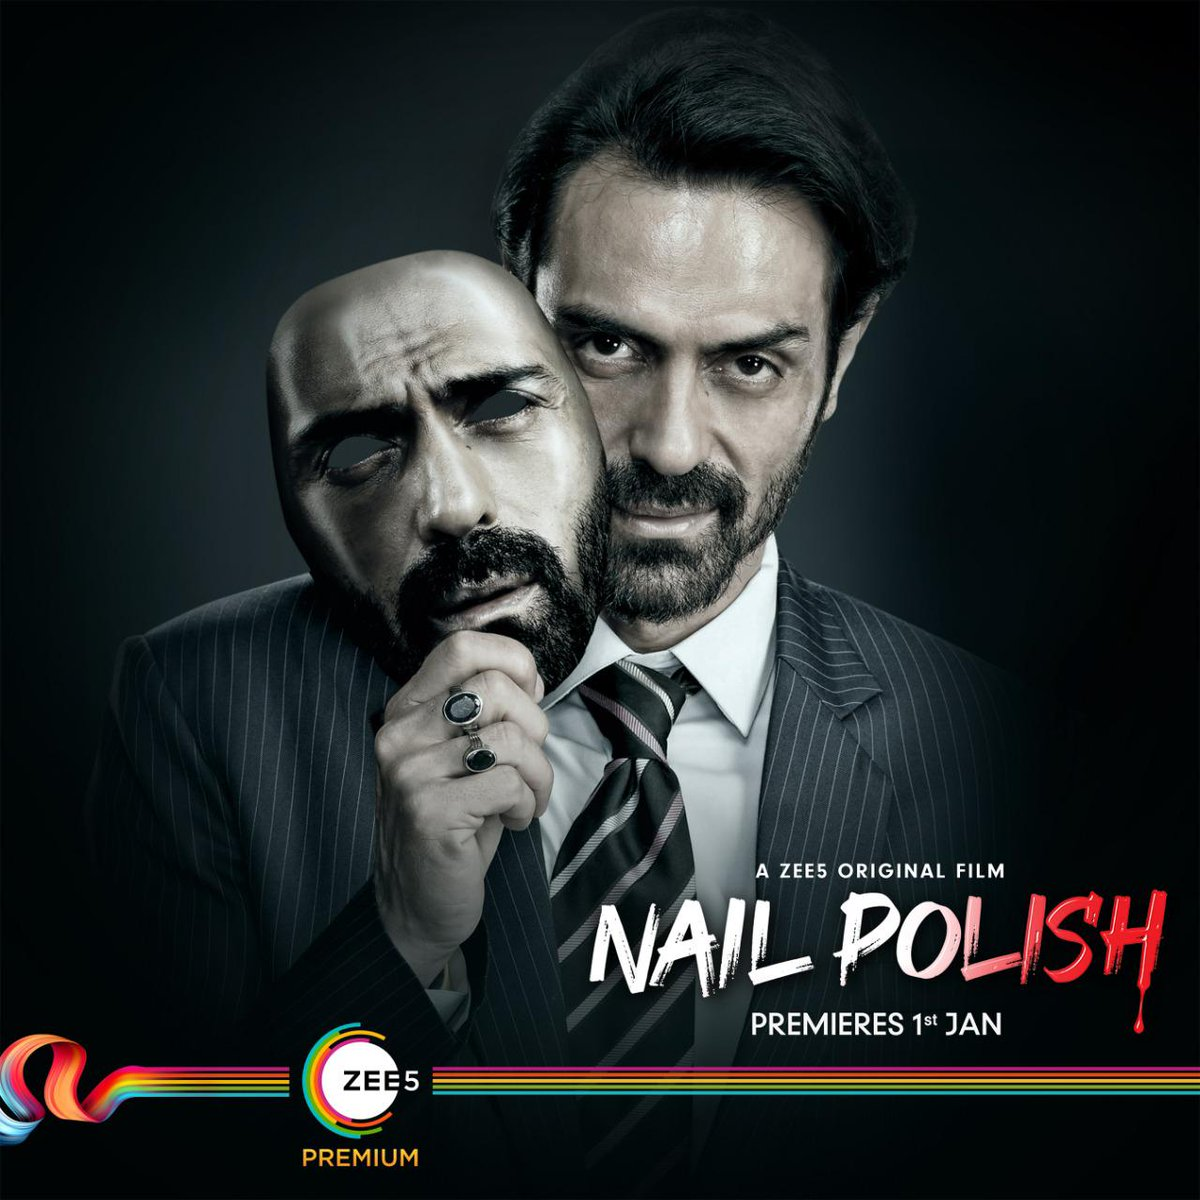 Here's a look at the latest poster of #ArjunRampal from #Nailpolish. The film will premiere on 1st January 2021 on @ZEE5Premium @ZEE5India @rampalarjun